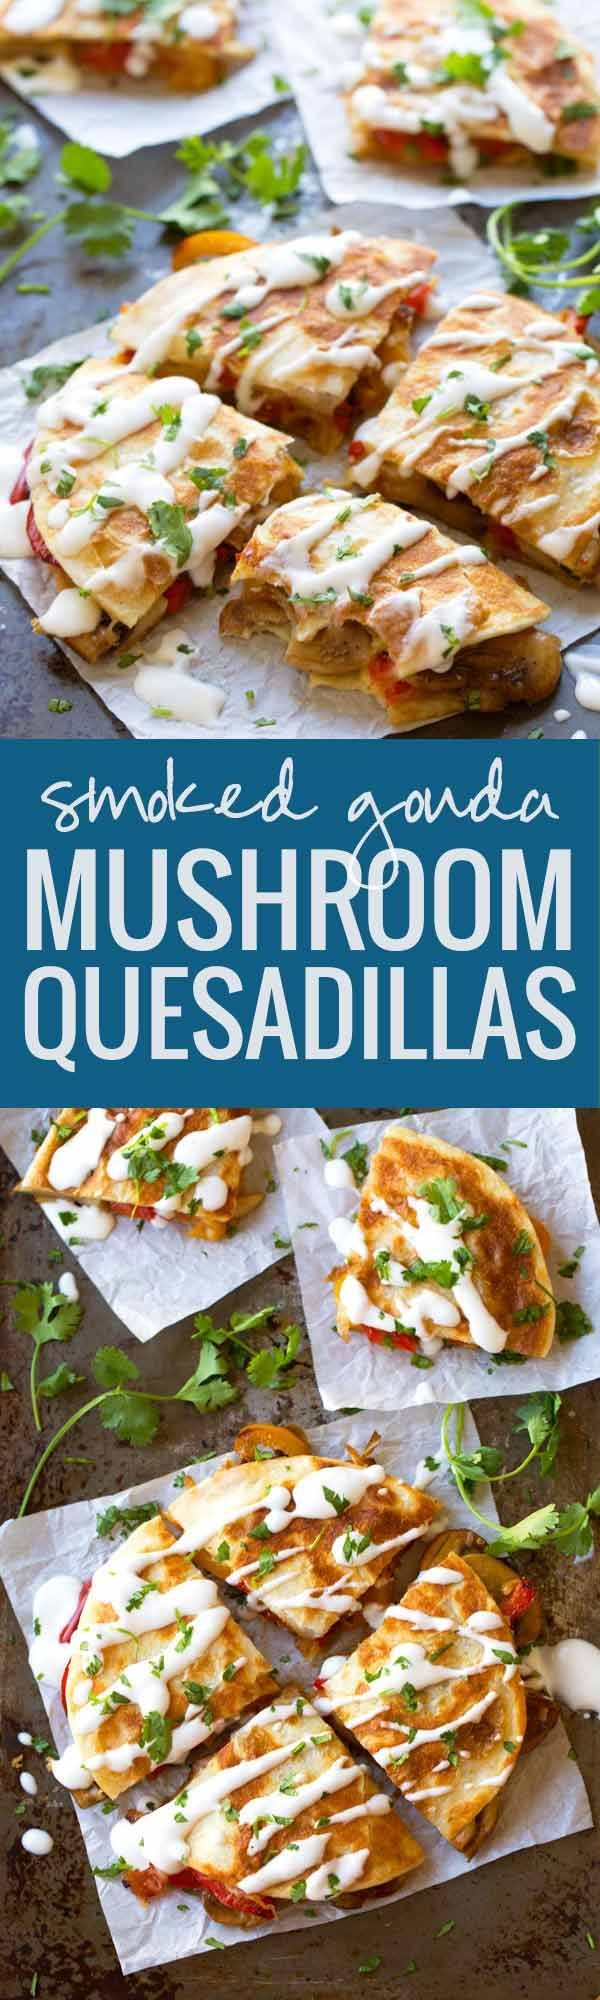 Smoked Gouda Mushroom Quesadilla - these veggie-packed munchies are the perfect summer meal! | pinchofyum.com